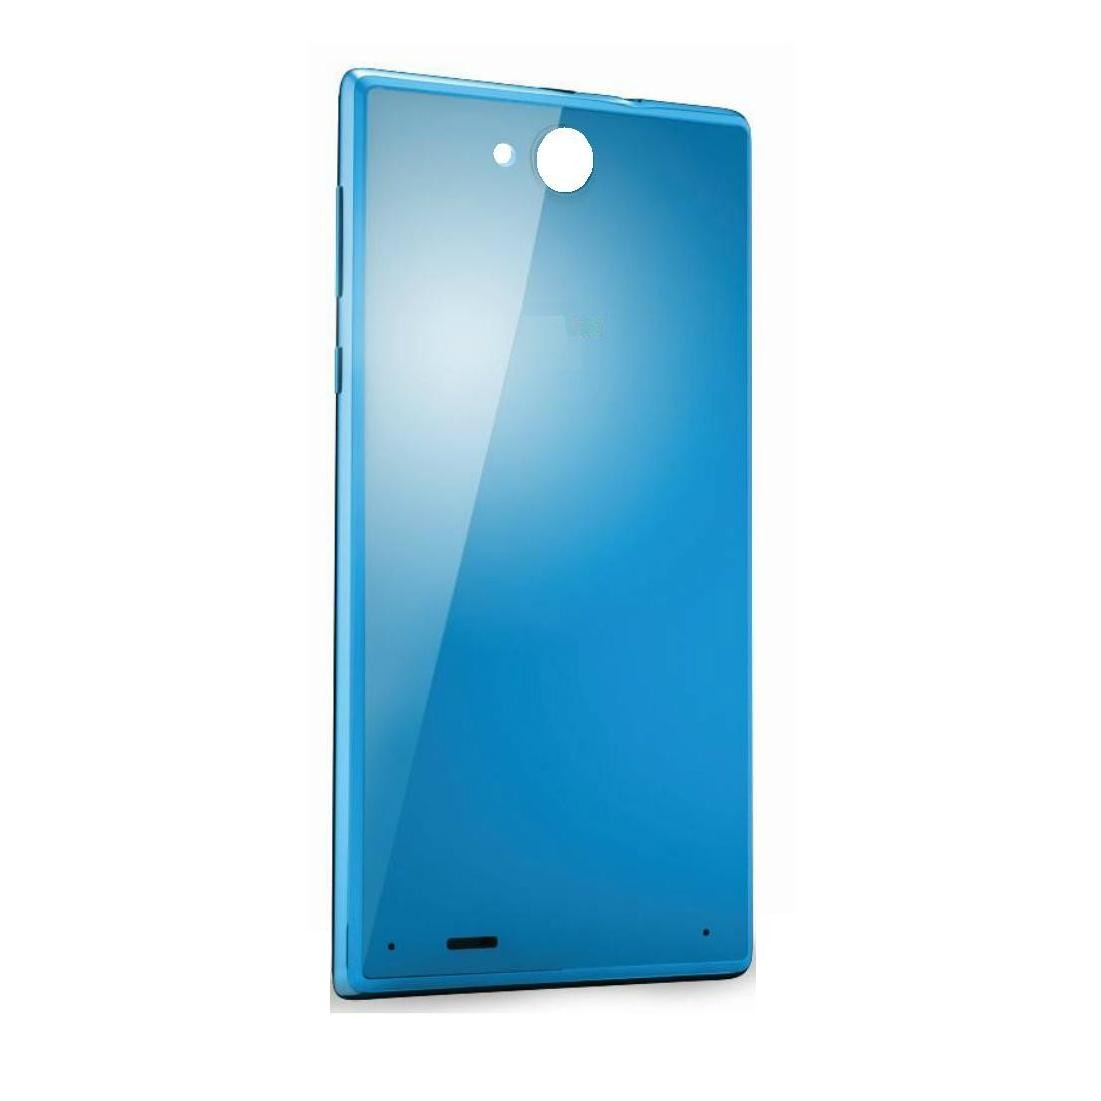 best service 0a675 463f5 Back Panel Cover for XOLO Prime - Blue